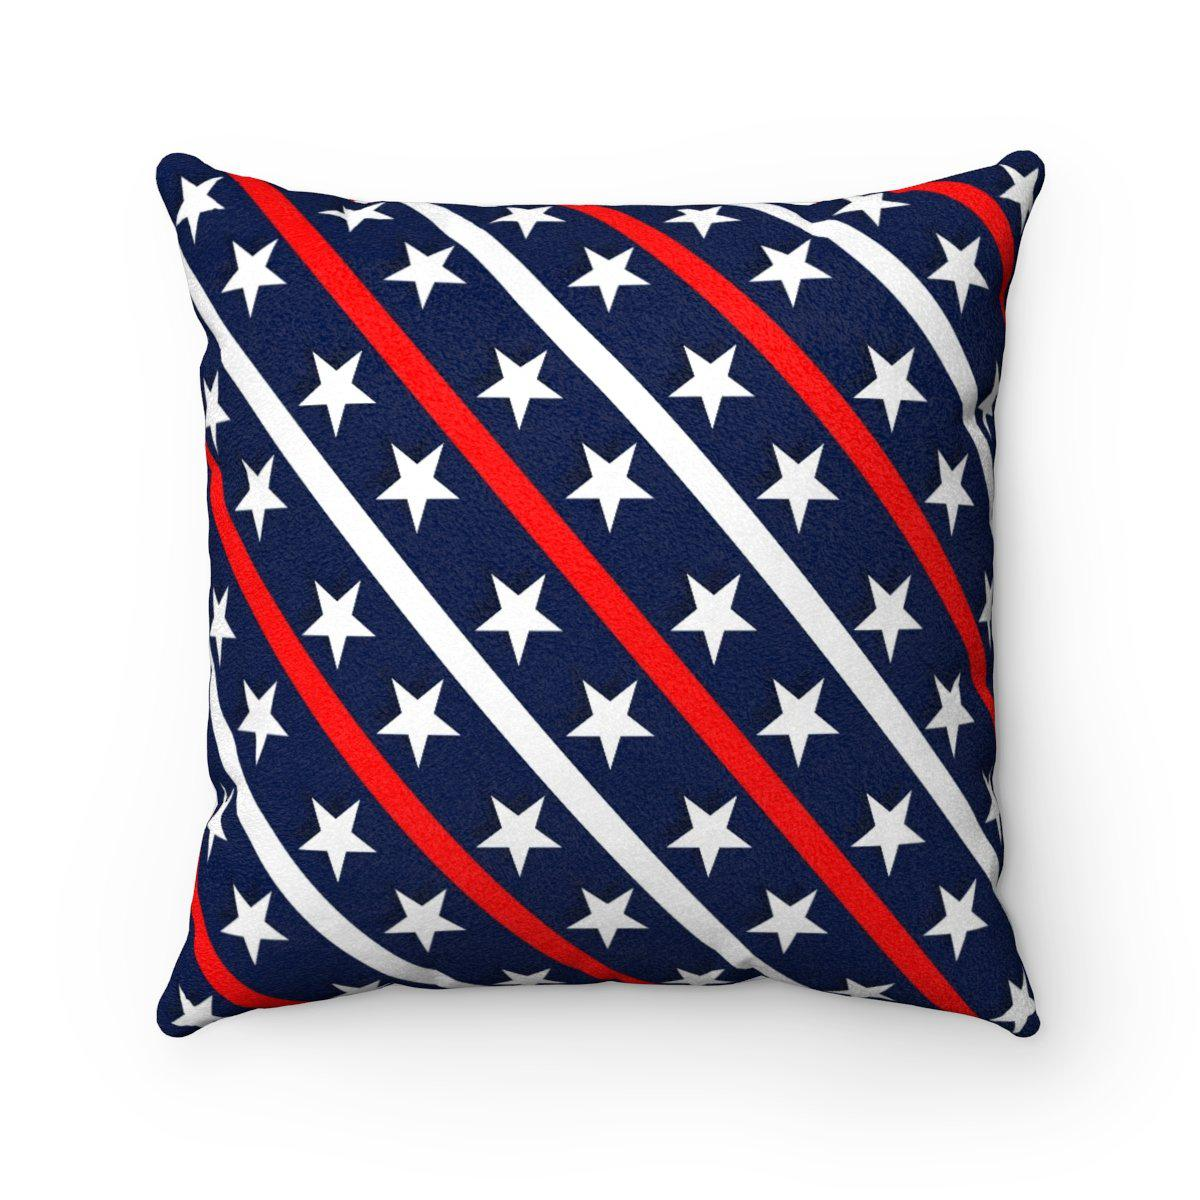 "4th of July microfiber ""2 in 1"" decorative pillow w/insert-Home Decor - Decorative Accents - Pillows & Throws - Decorative Pillows-Maison d'Elite-14x14-Très Elite"